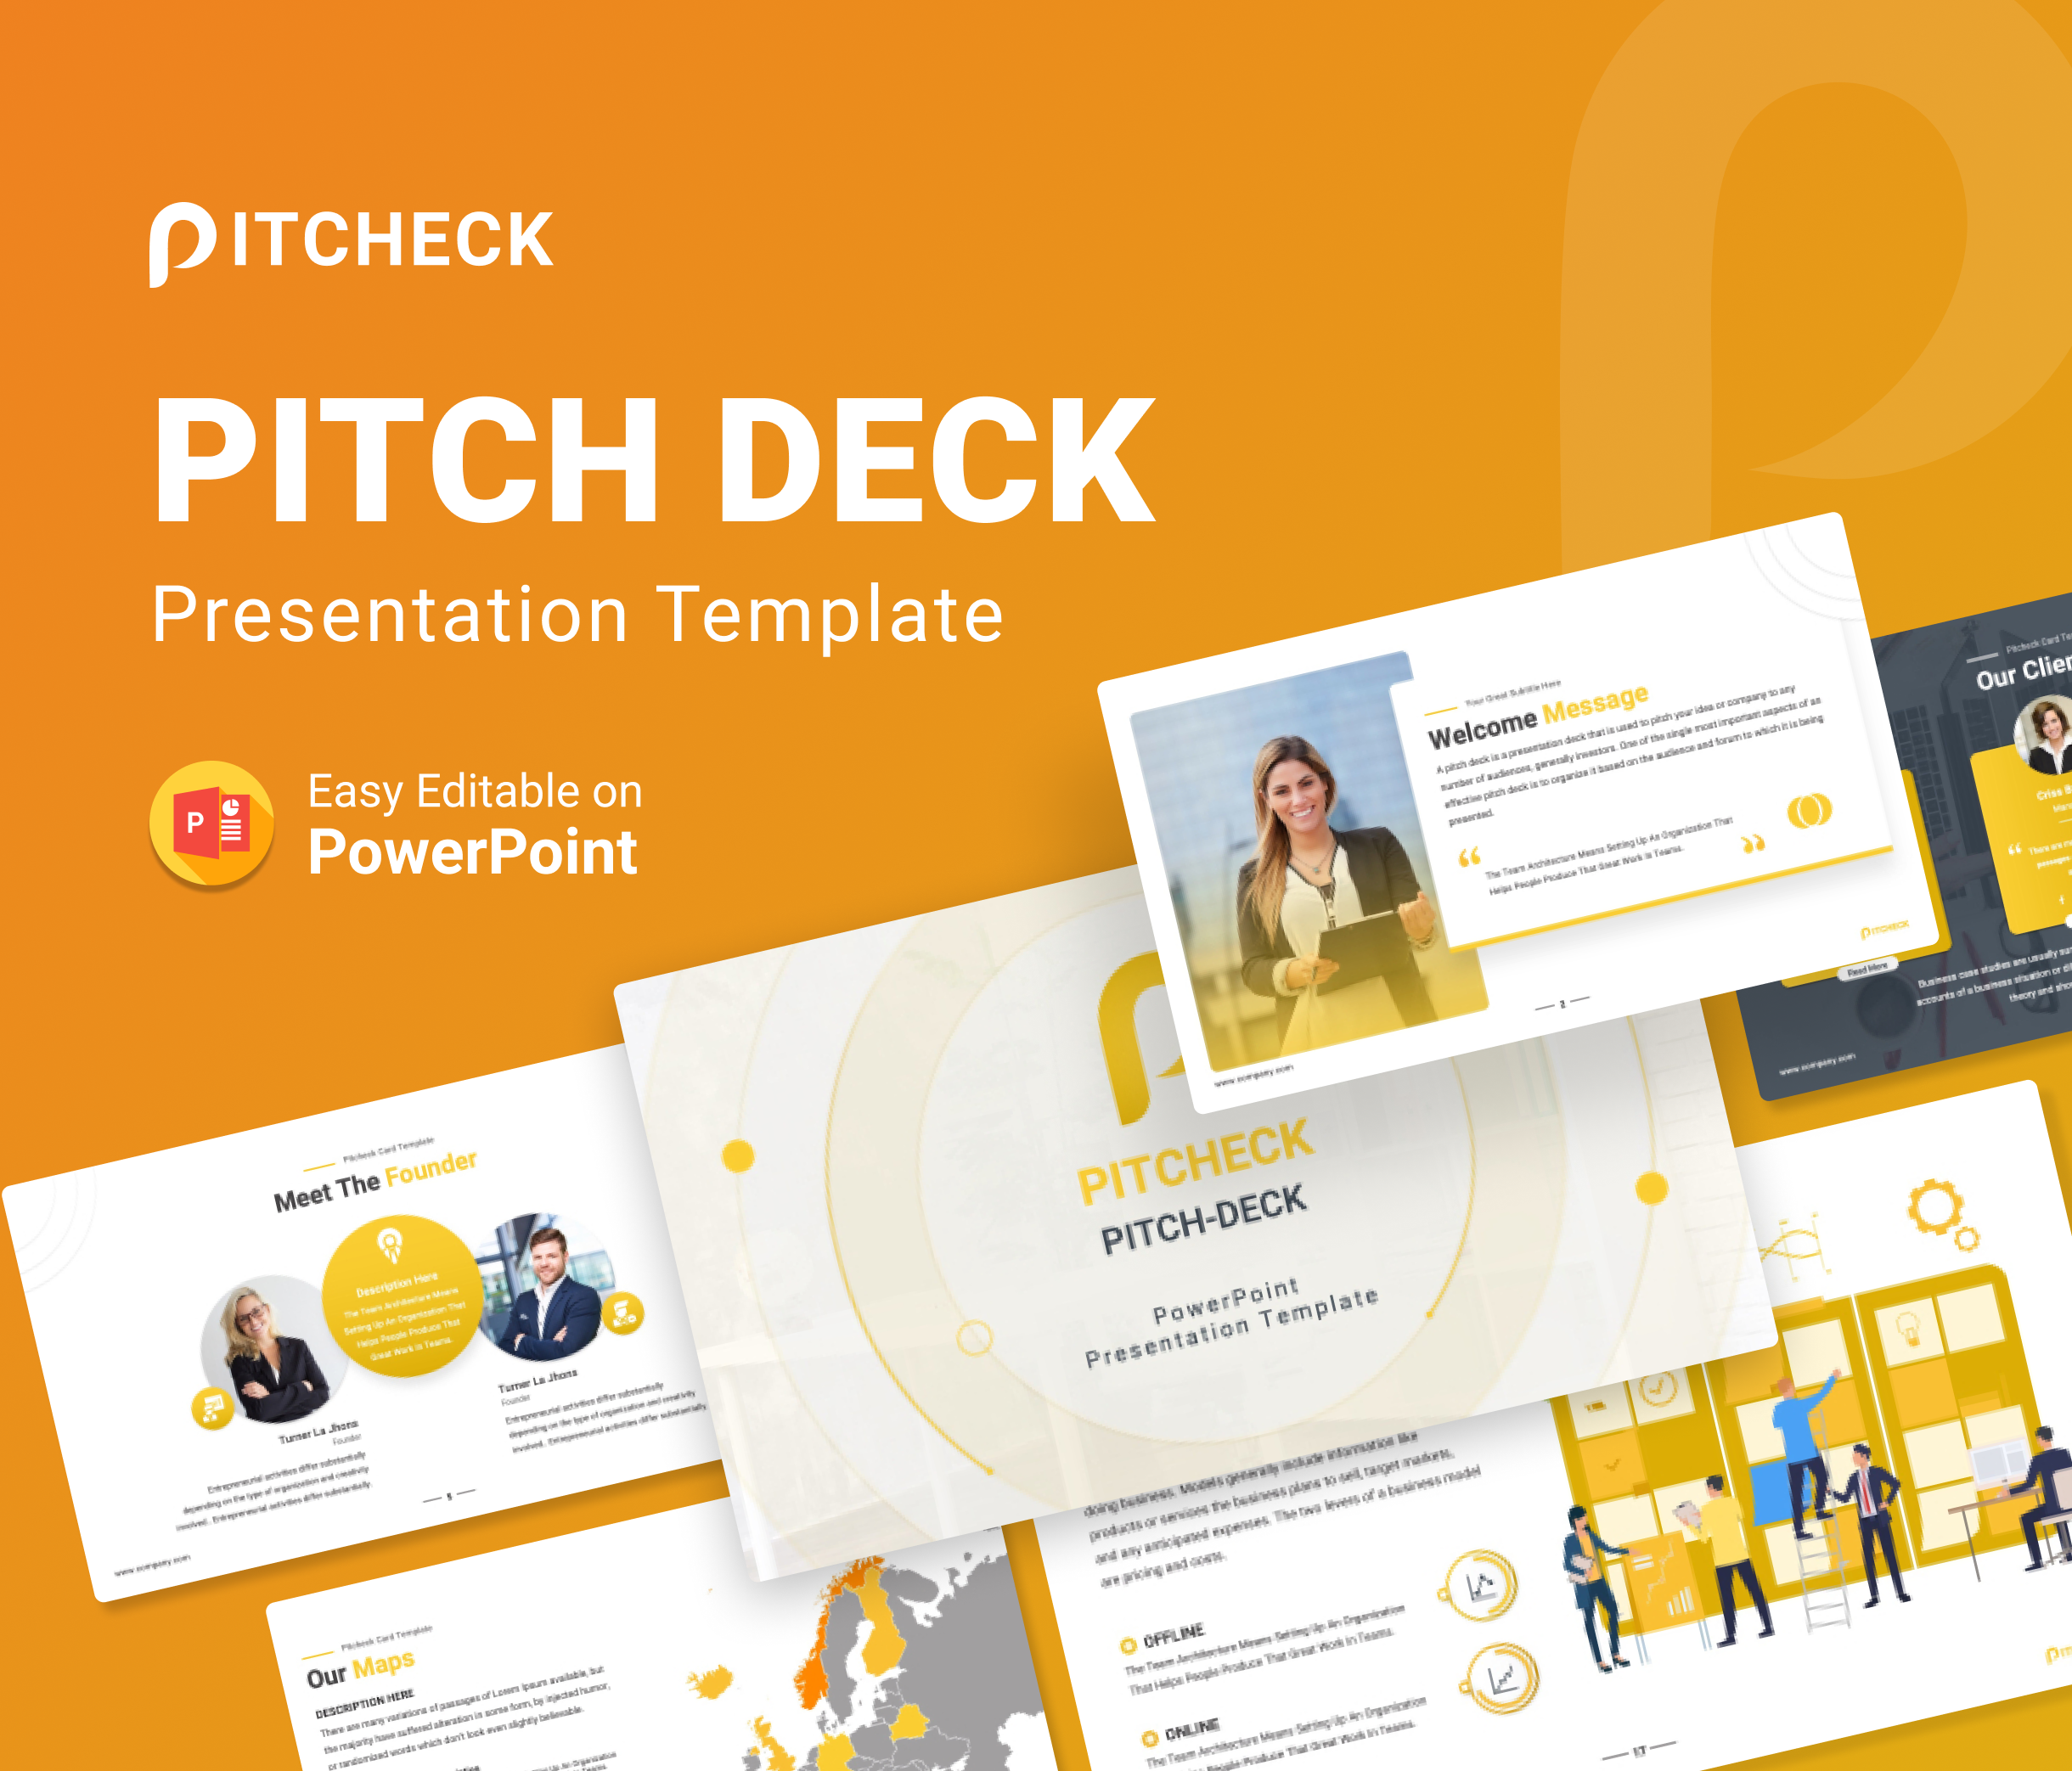 Pitcheck – Pitch Deck PowerPoint Presentation Template